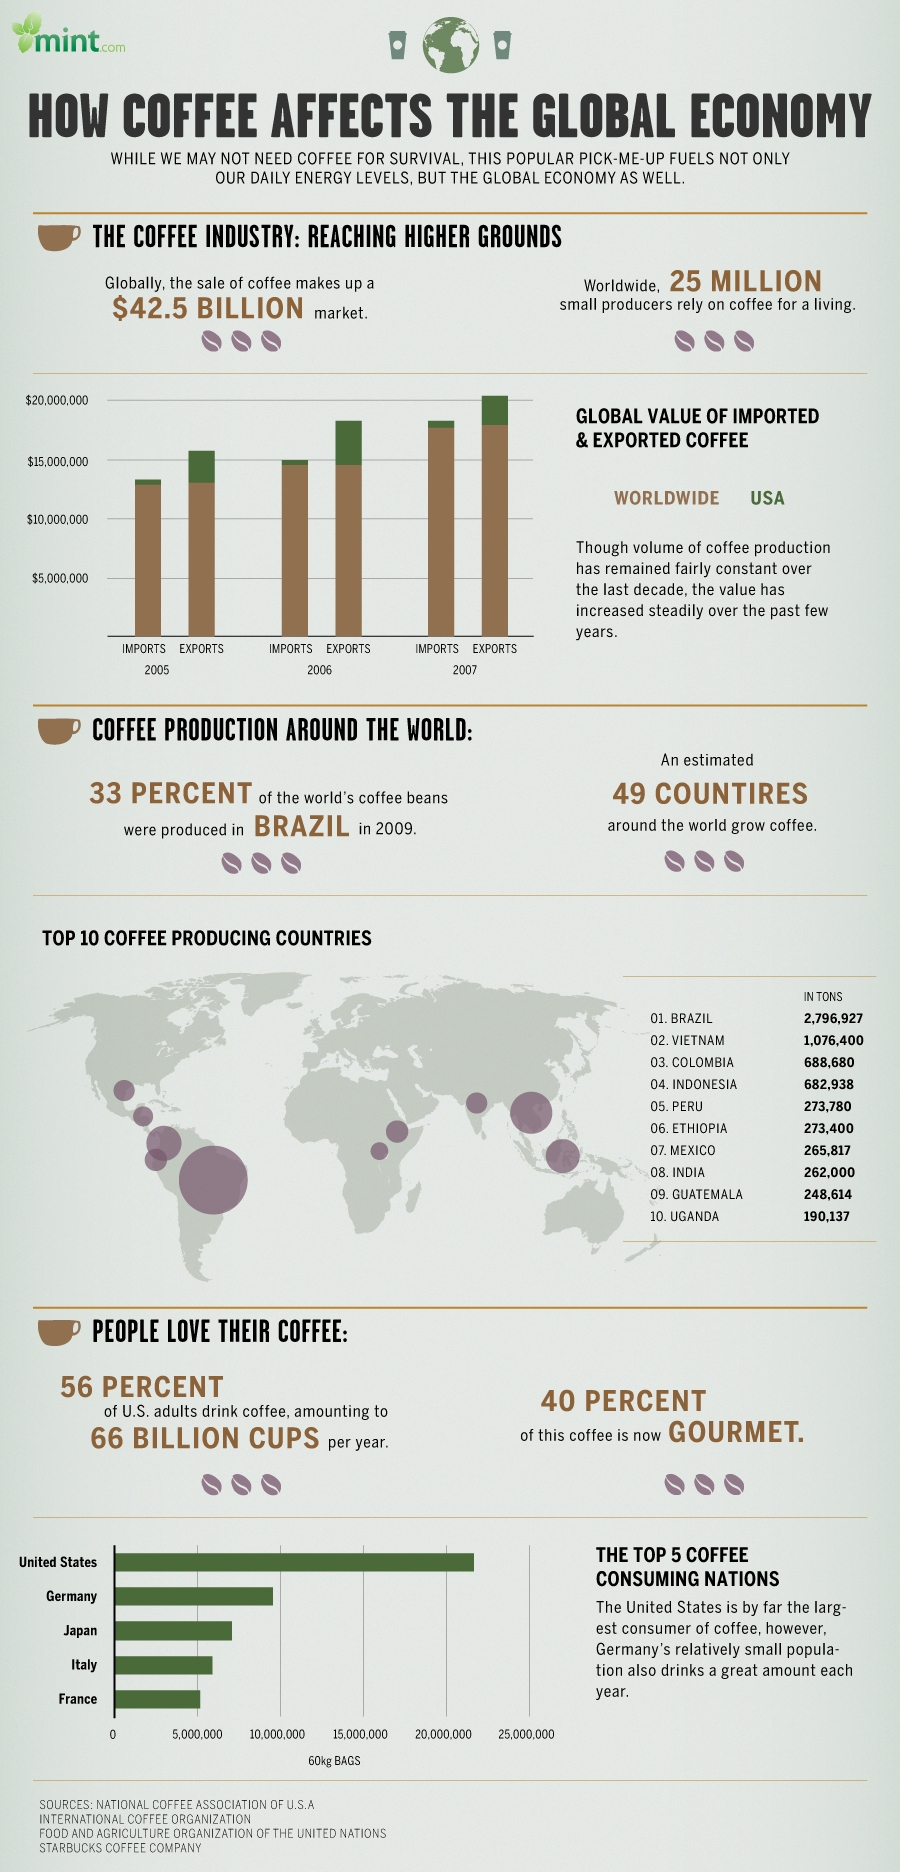 Mint.com-How-Coffee-Affects-the-Global-Economy.jpg